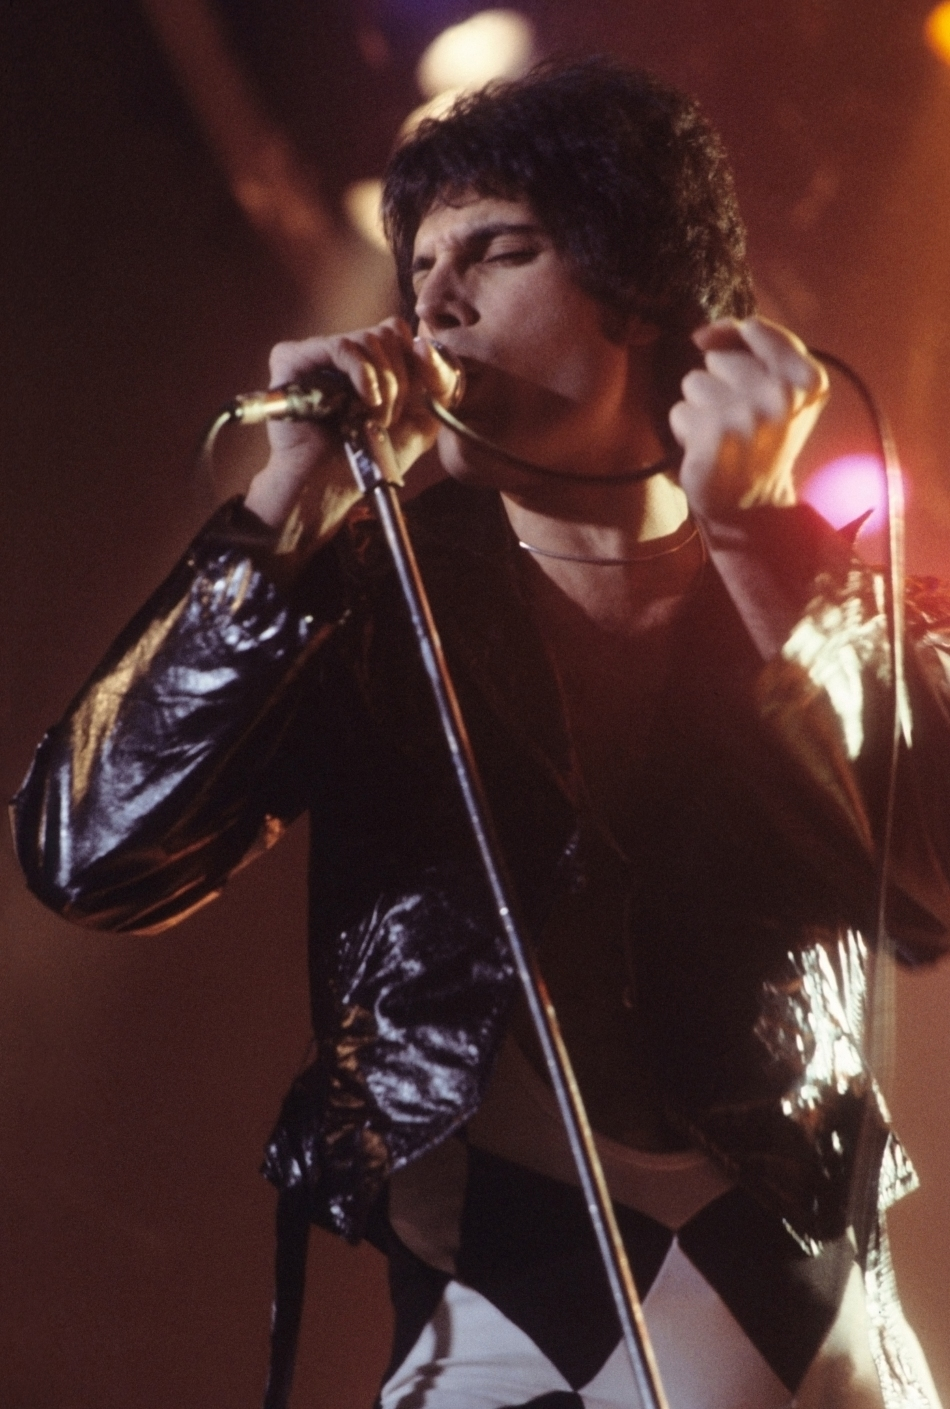 Freddie_Mercury_performing_in_New_Haven,_CT,_November_1977.jpg